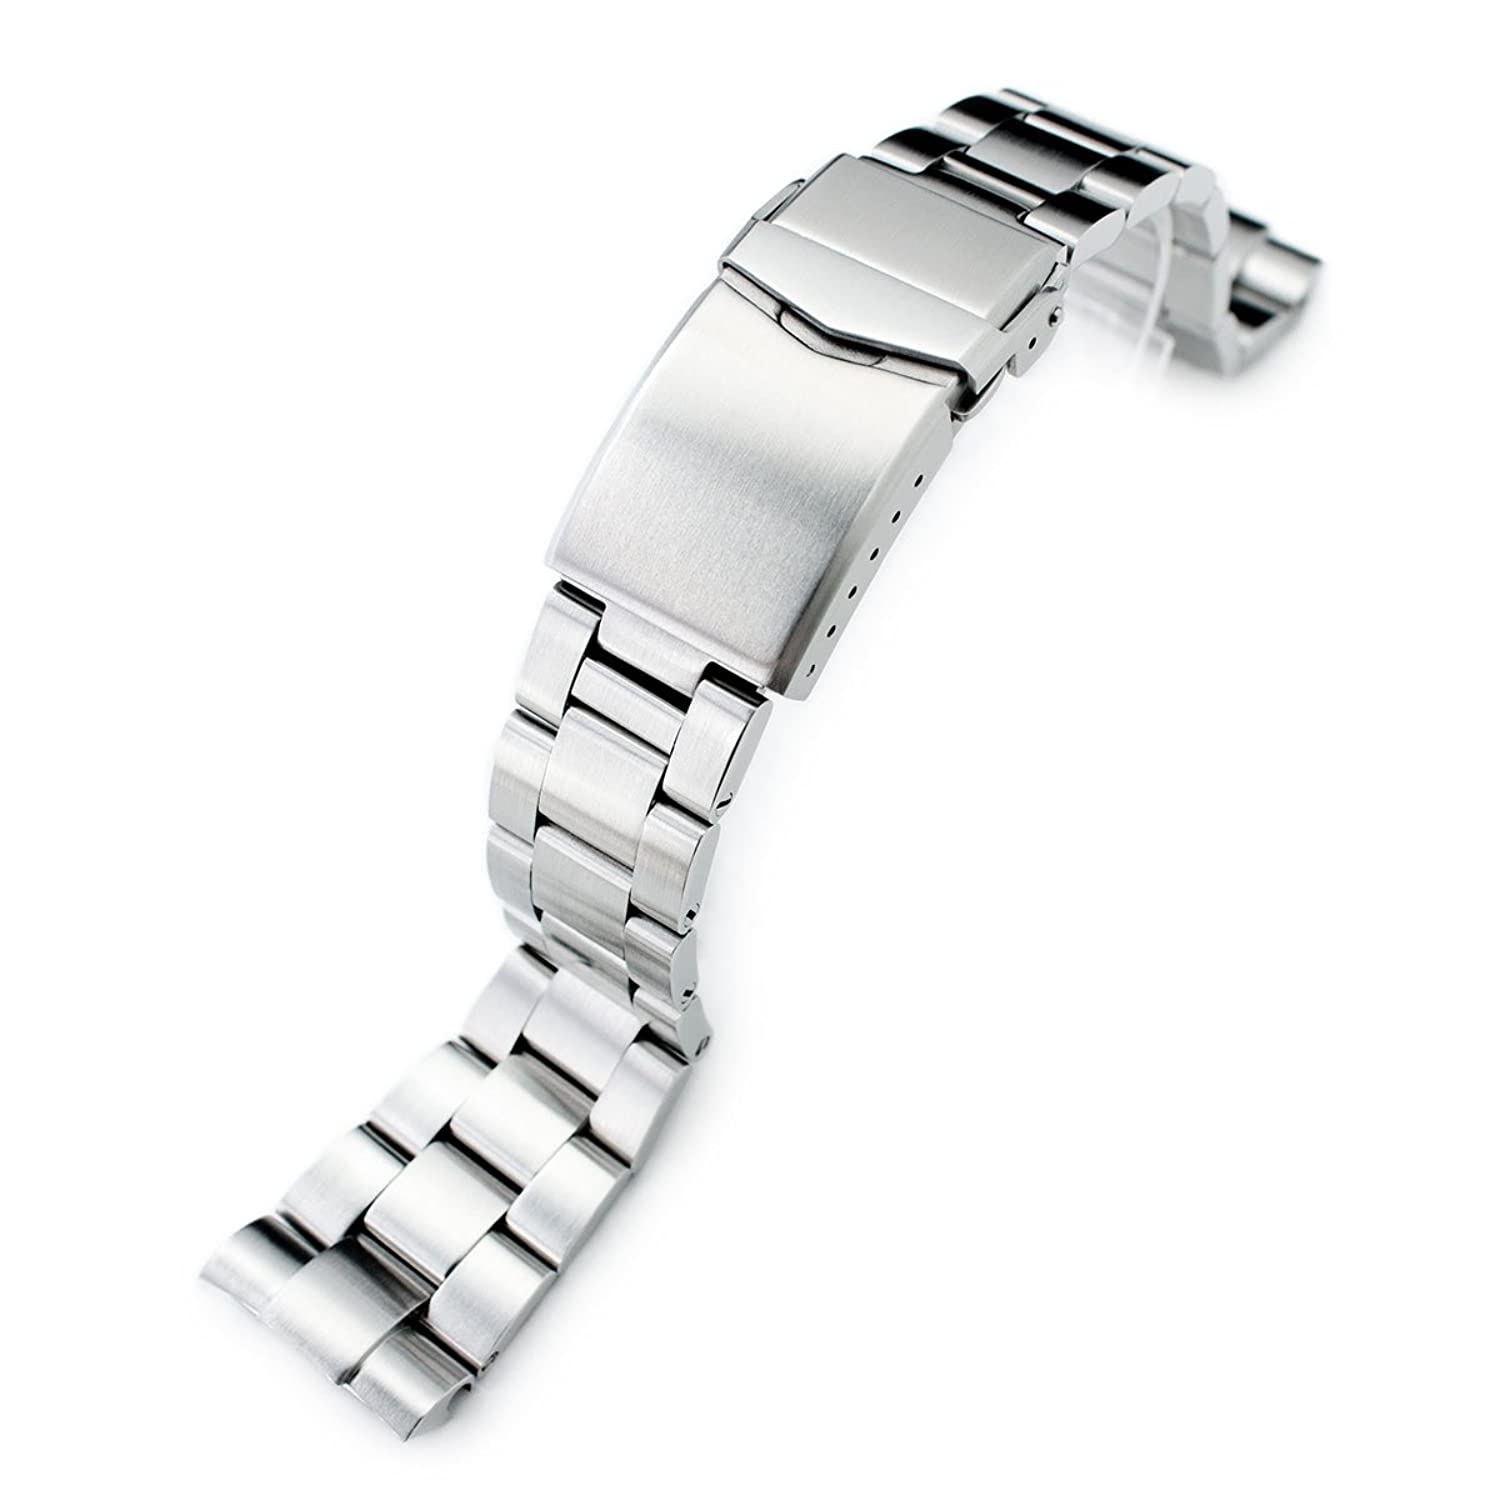 22mm Super Oyster Watch Bracelet for Seiko New Turtles SRP775 SRP777